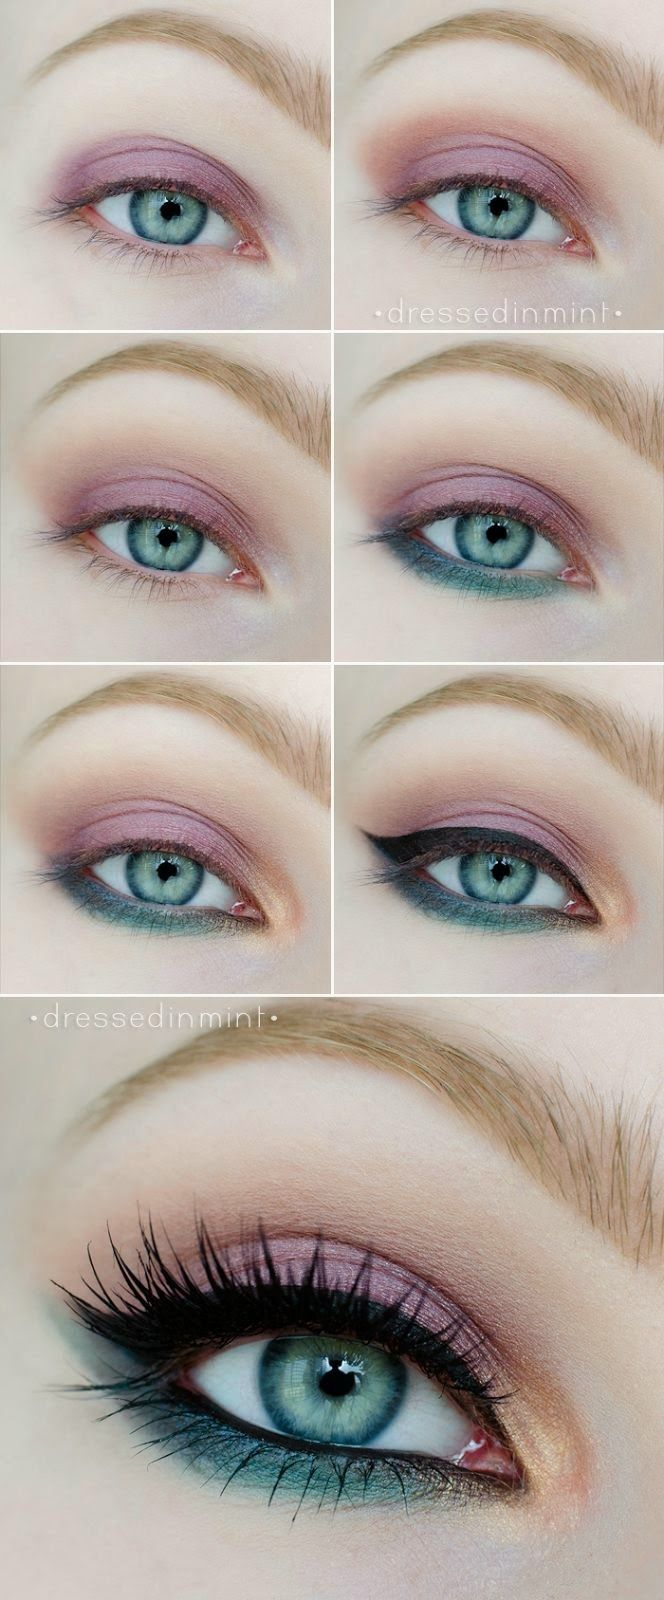 Makeup Spring: How to Make a Make Up Colorful